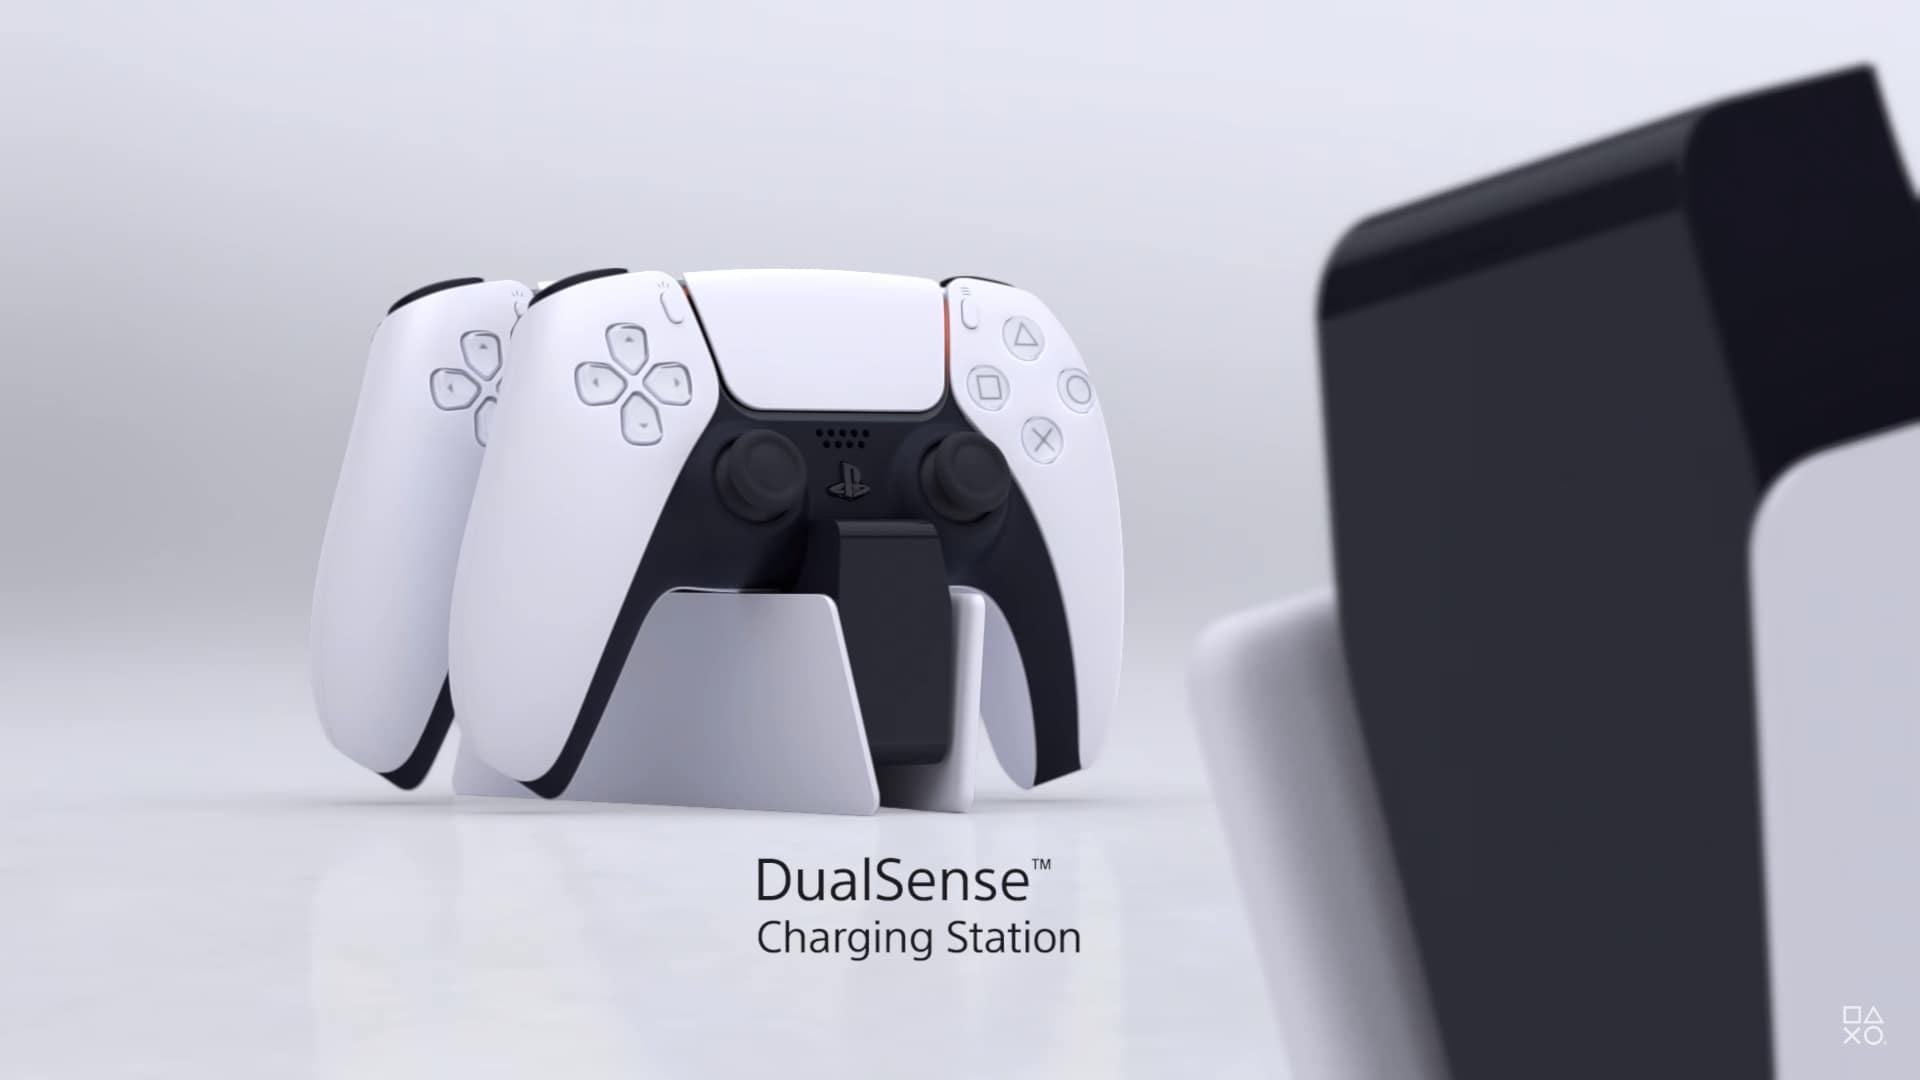 The new DualSense Controller charging dock can charge two controllers at once.